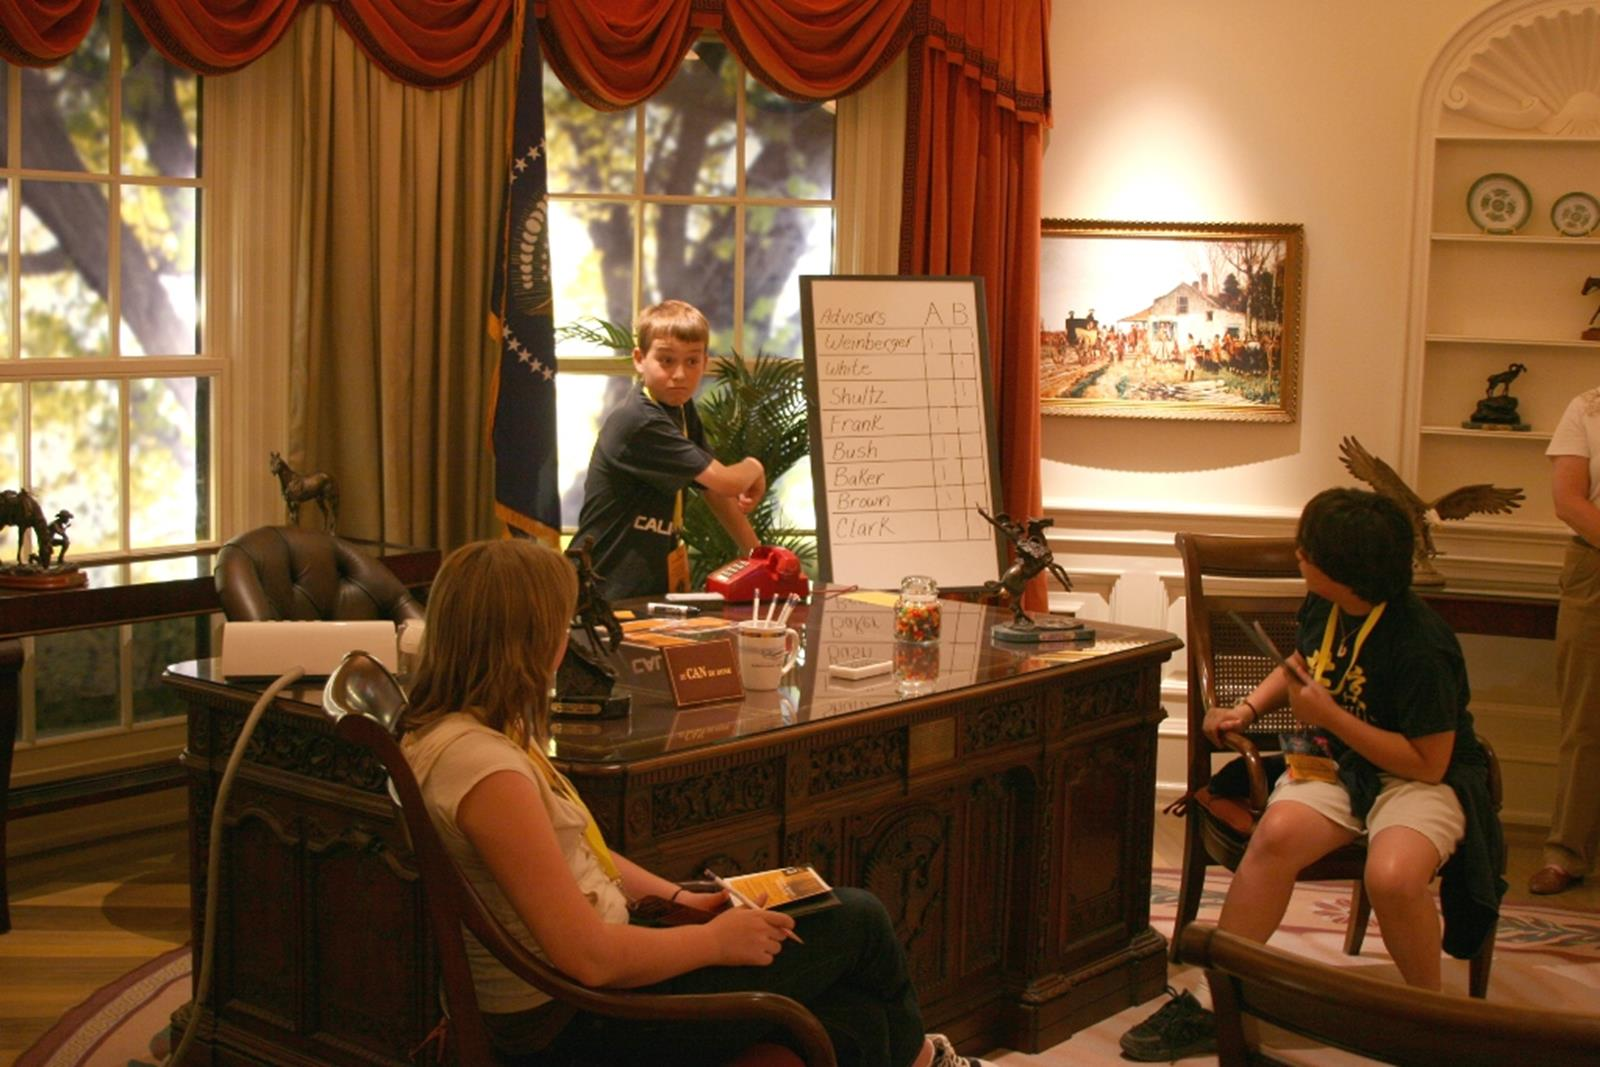 Students reenact in Discovery Center's Oval Office. Credit: Discovery Center